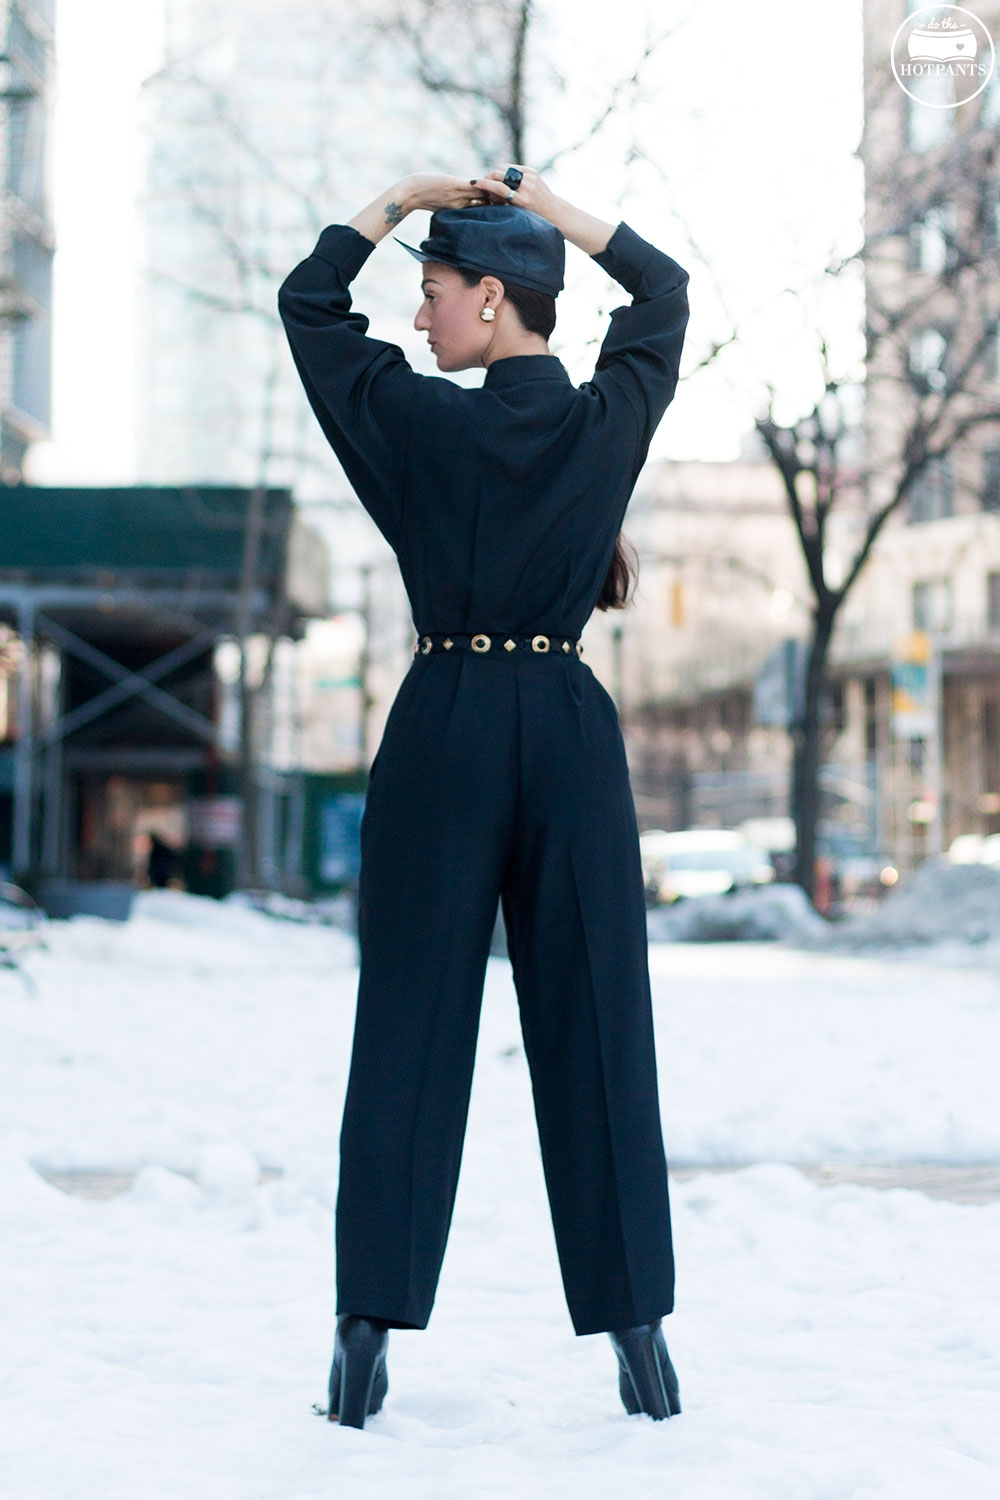 Do The Hotpants Dana Suchow Black Goth Jumpsuit Side Ponytail Leather Hat Winter Fashion Woman in Snow IMG_6324